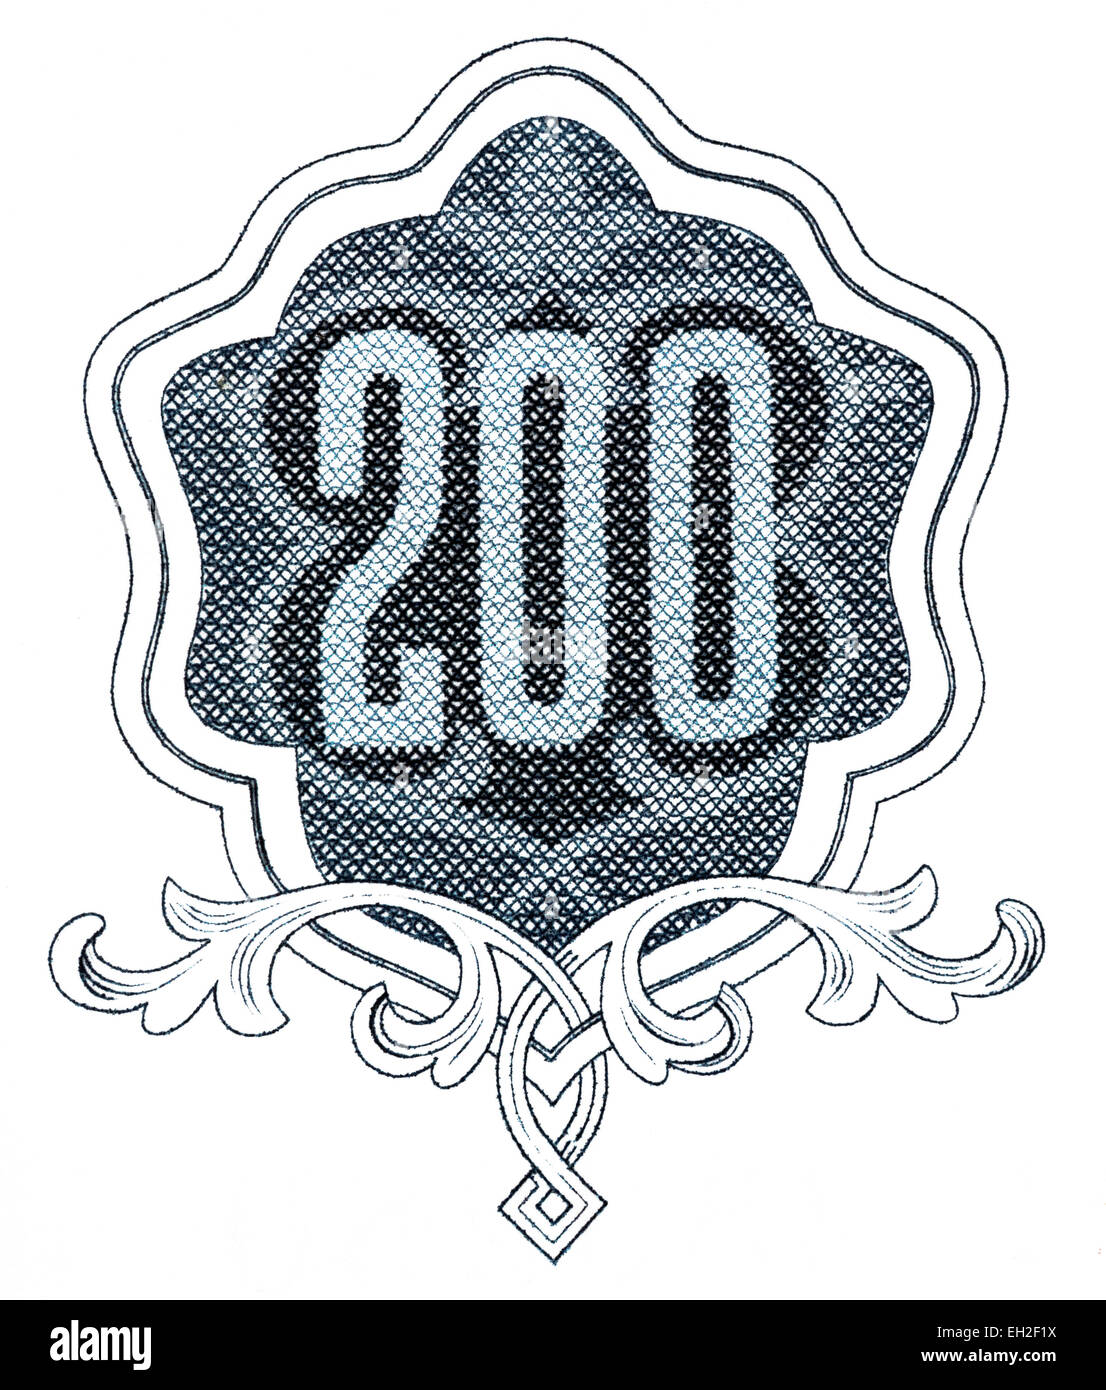 200 numeral from 200 leva banknote, Bulgaria, 1951 - Stock Image